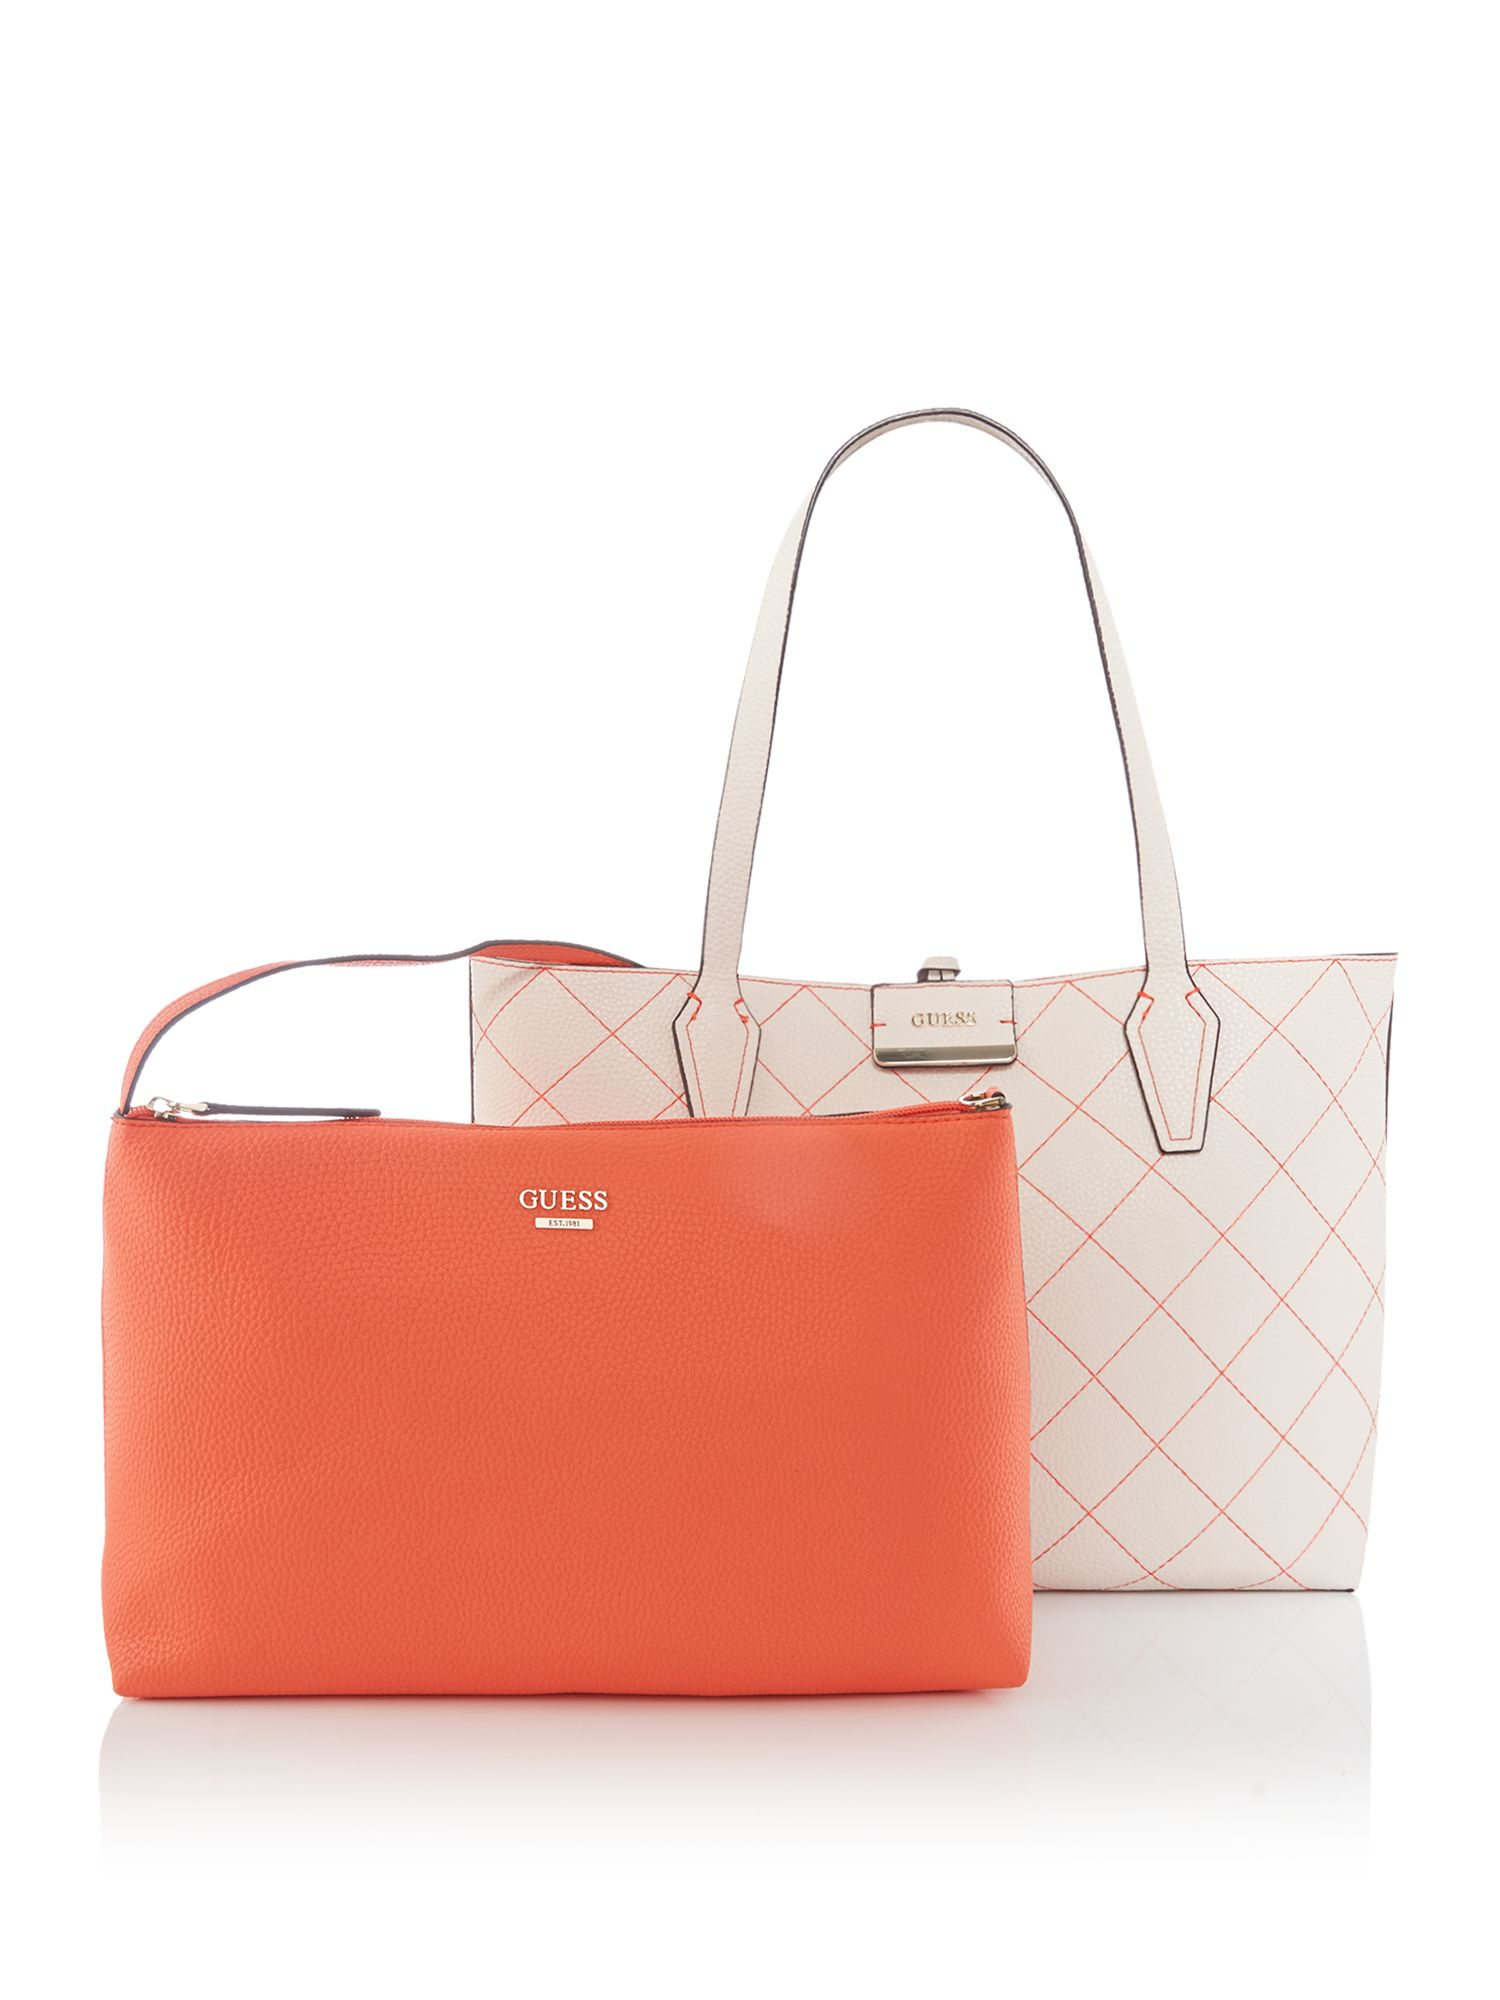 Guess Bobbi inside out tote bag, Neutral